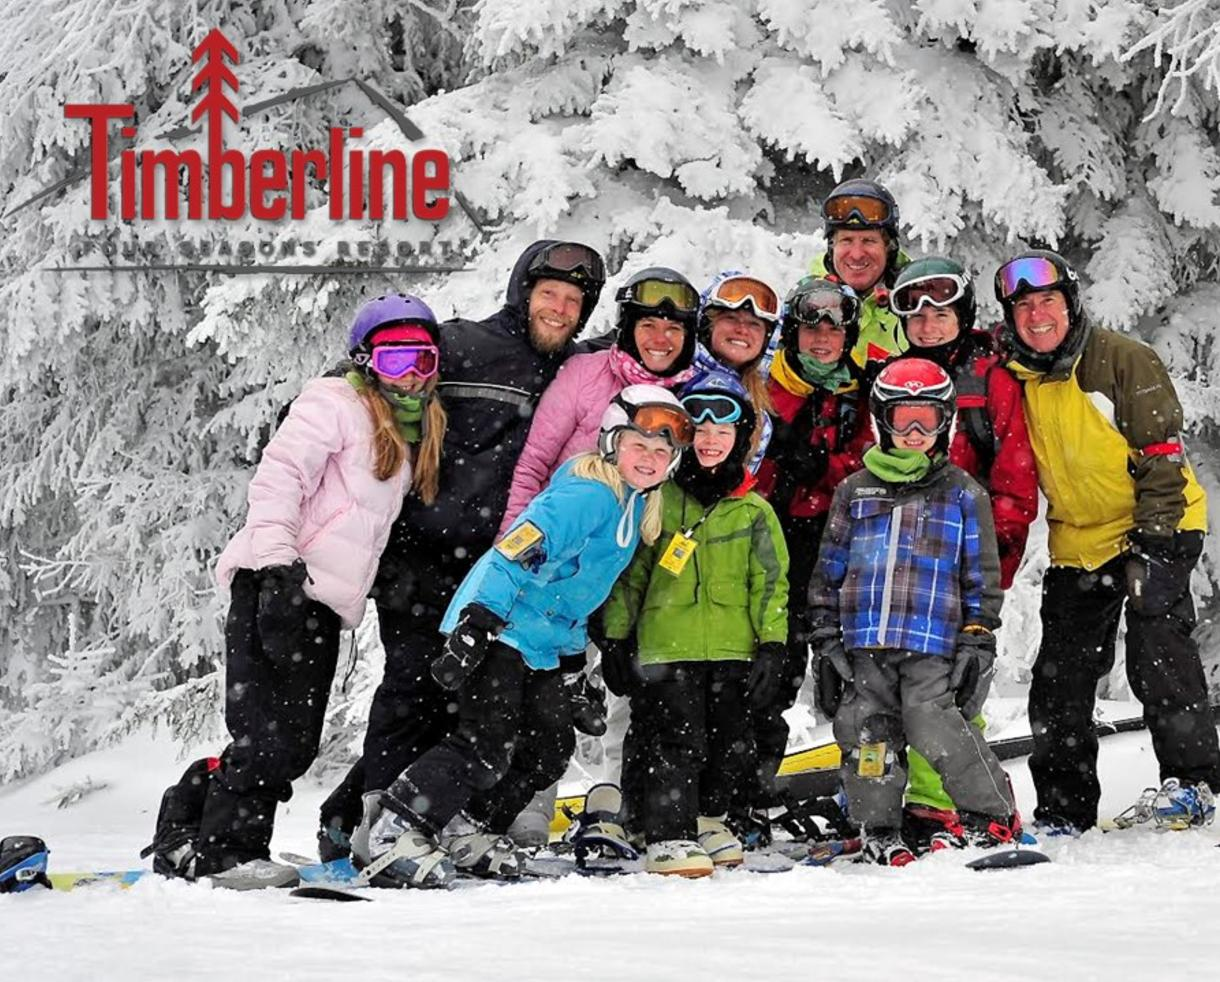 $35 for Adult or Child Ski Lift Ticket & Helmet at Timberline Four Season Resort in West Virginia + OVERNIGHT STAY OPTION! ($84 Value - 59% Off)